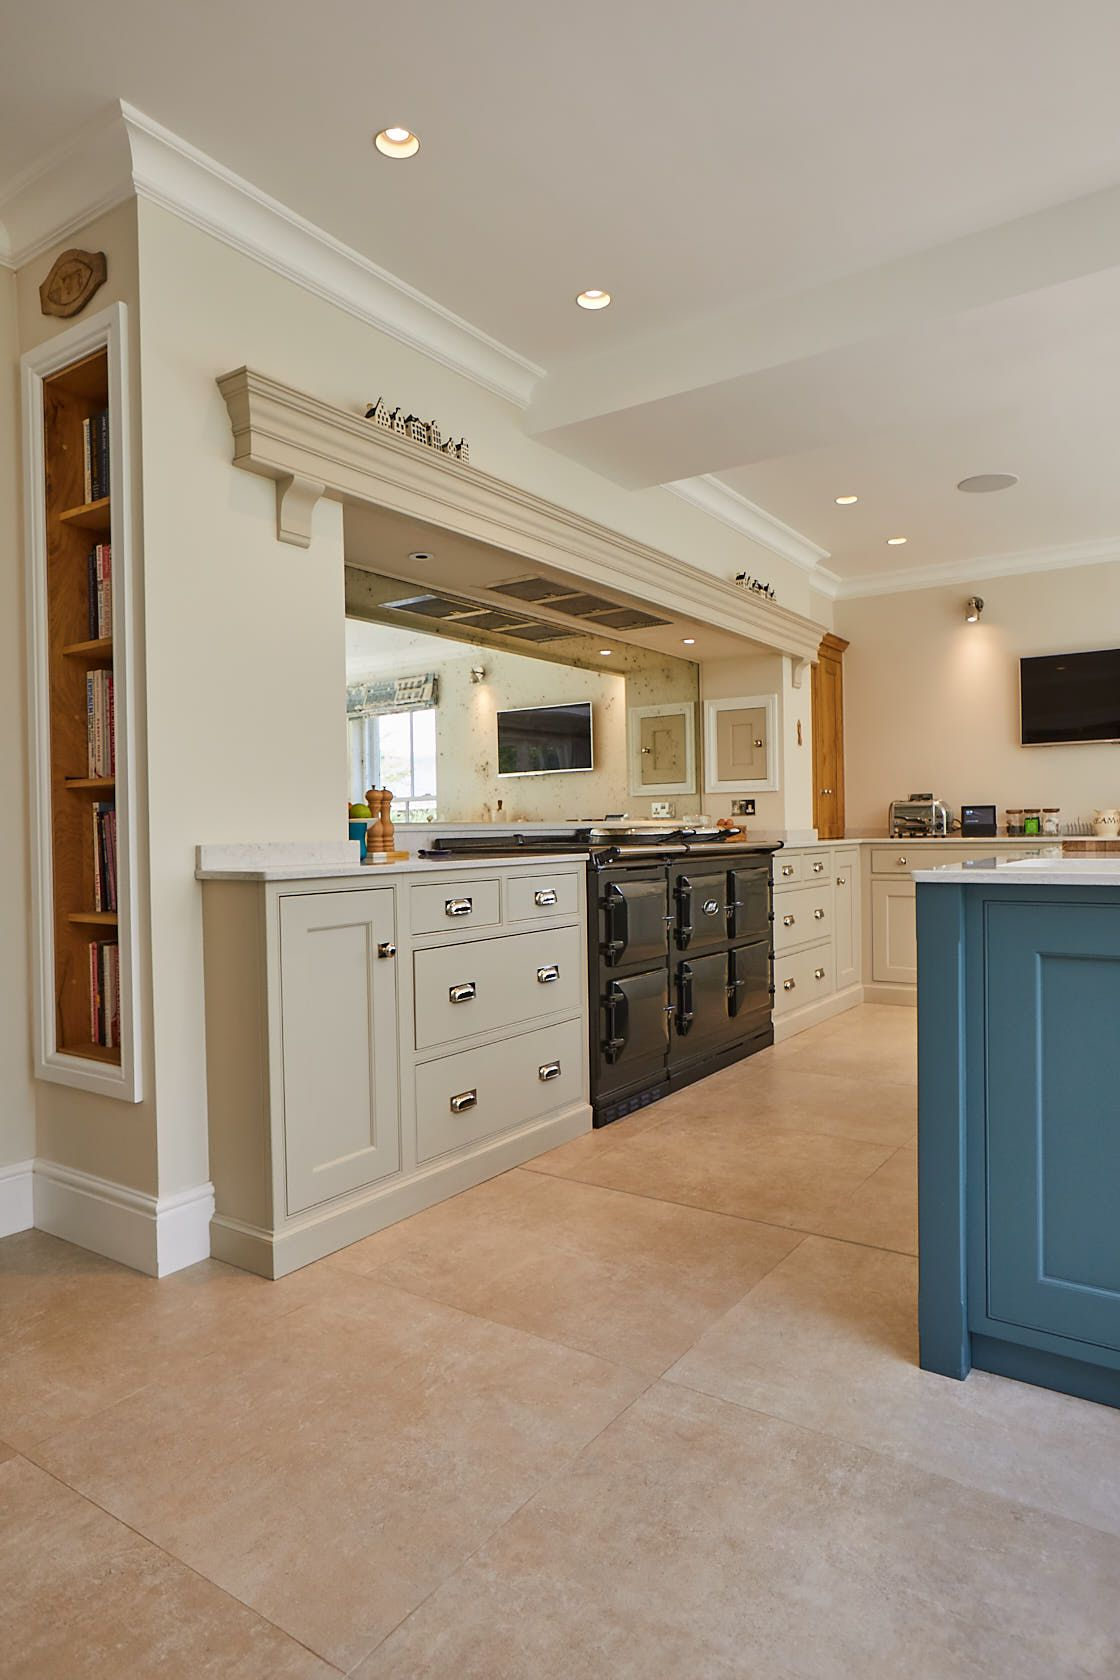 Painted Cabinets And Black Aga In 2020 Elegant Kitchen Design Bespoke Kitchen Cabinets Bespoke Kitchens